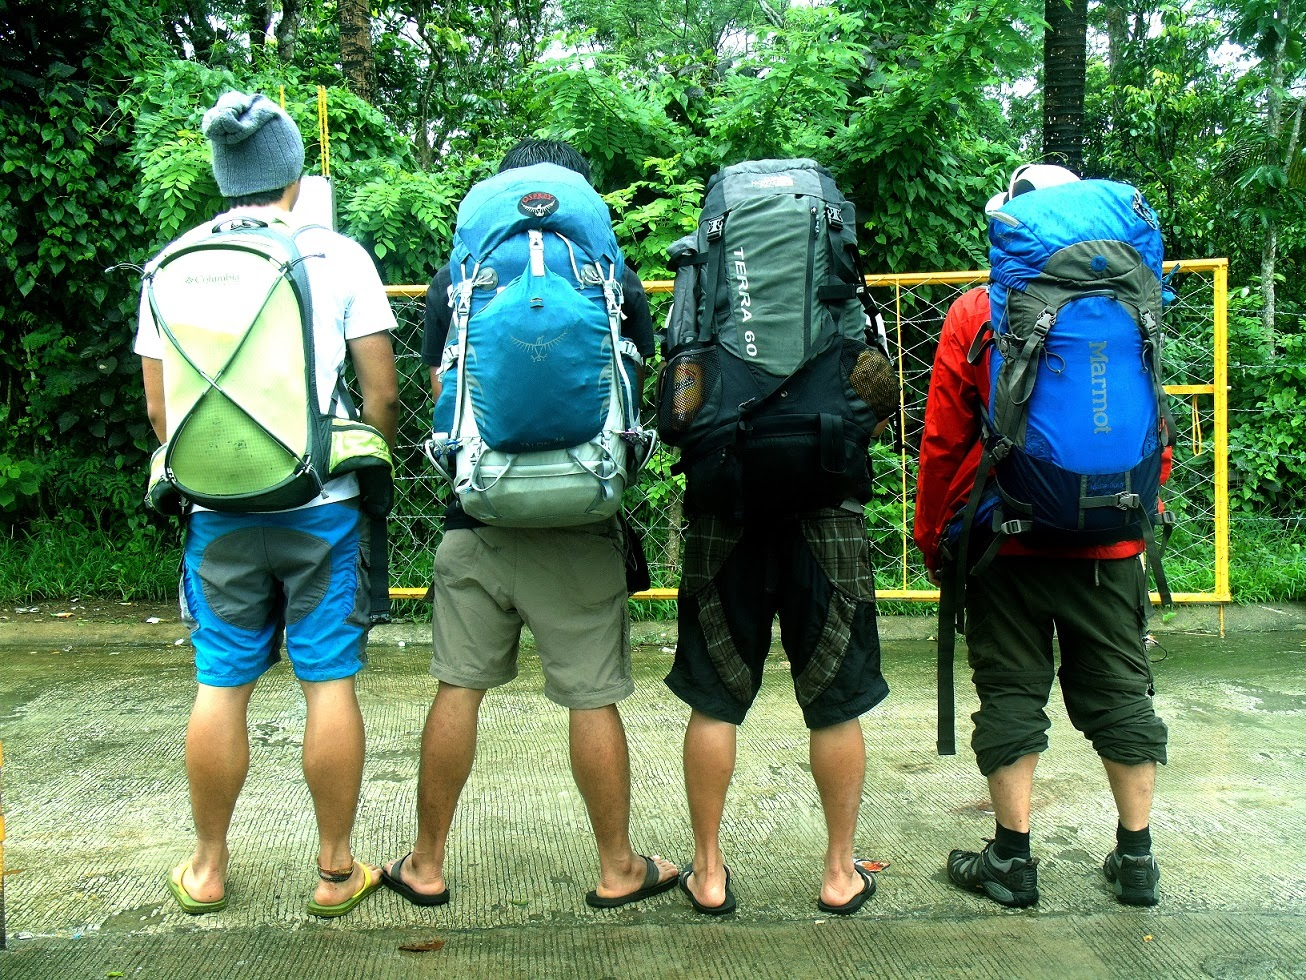 Buying A New Backpack? & LAGATAW: Buying A New Backpack?